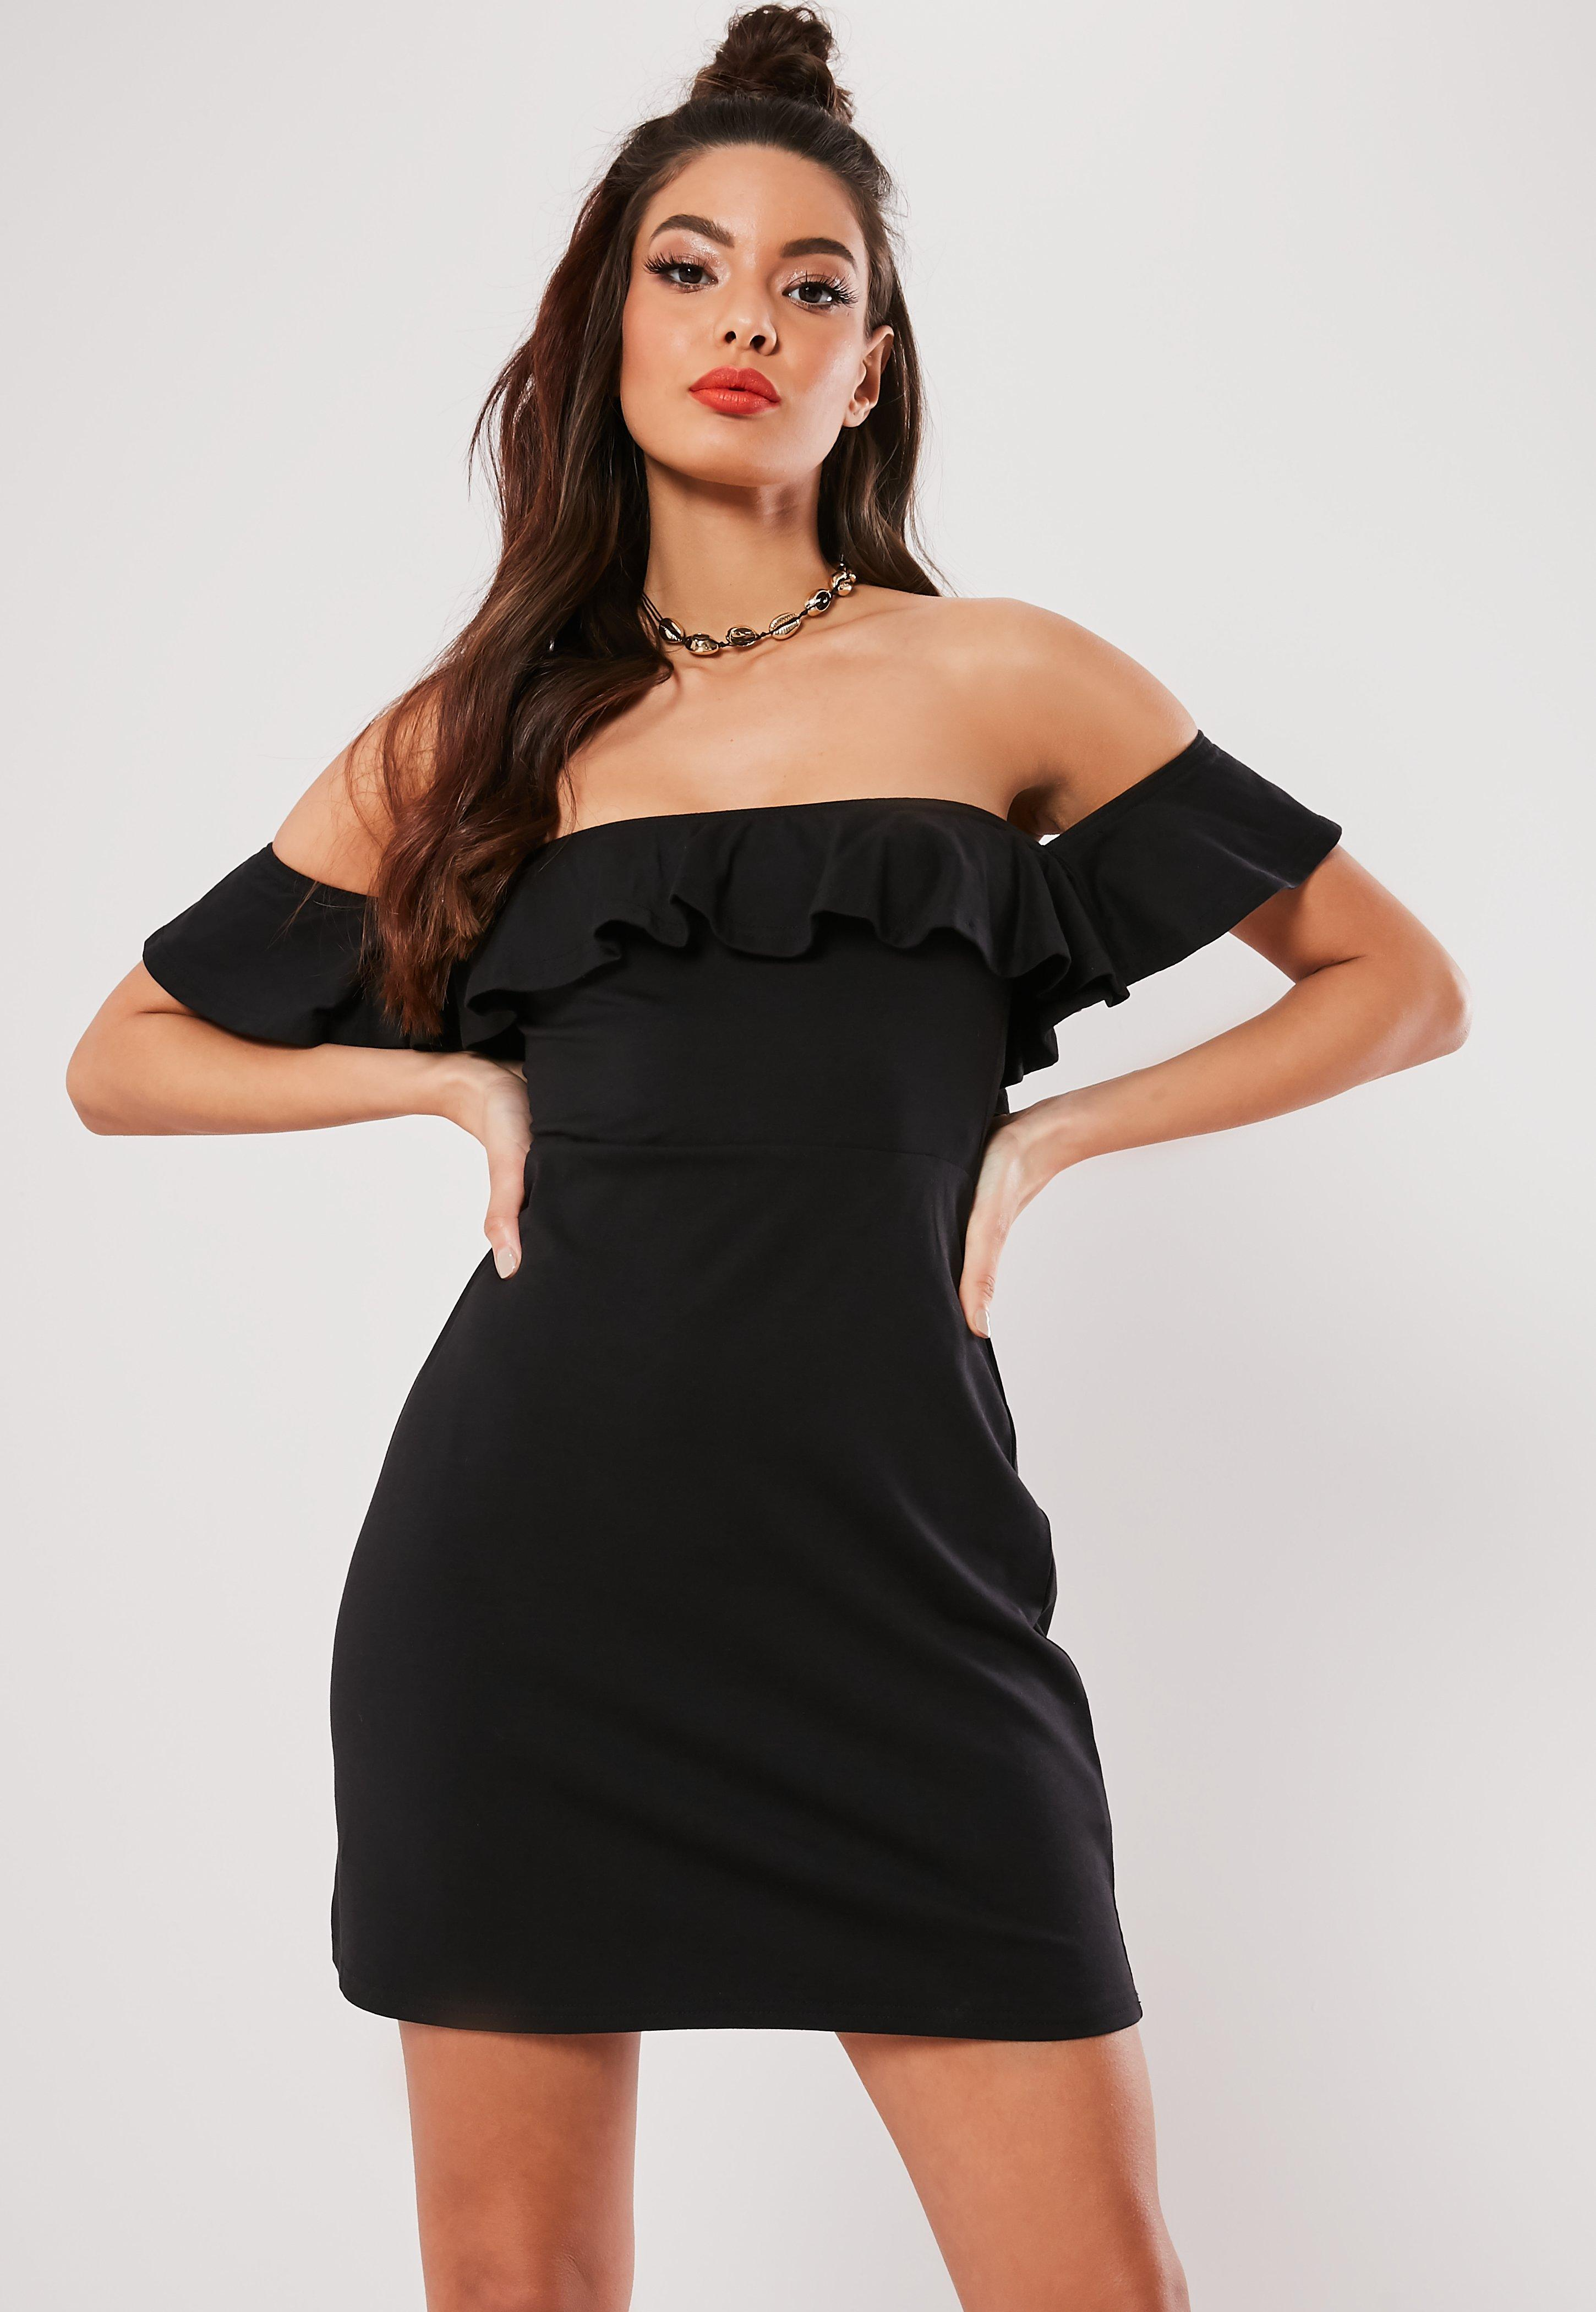 Off the Shoulder Dresses - Bardot Dresses Online  249692aca